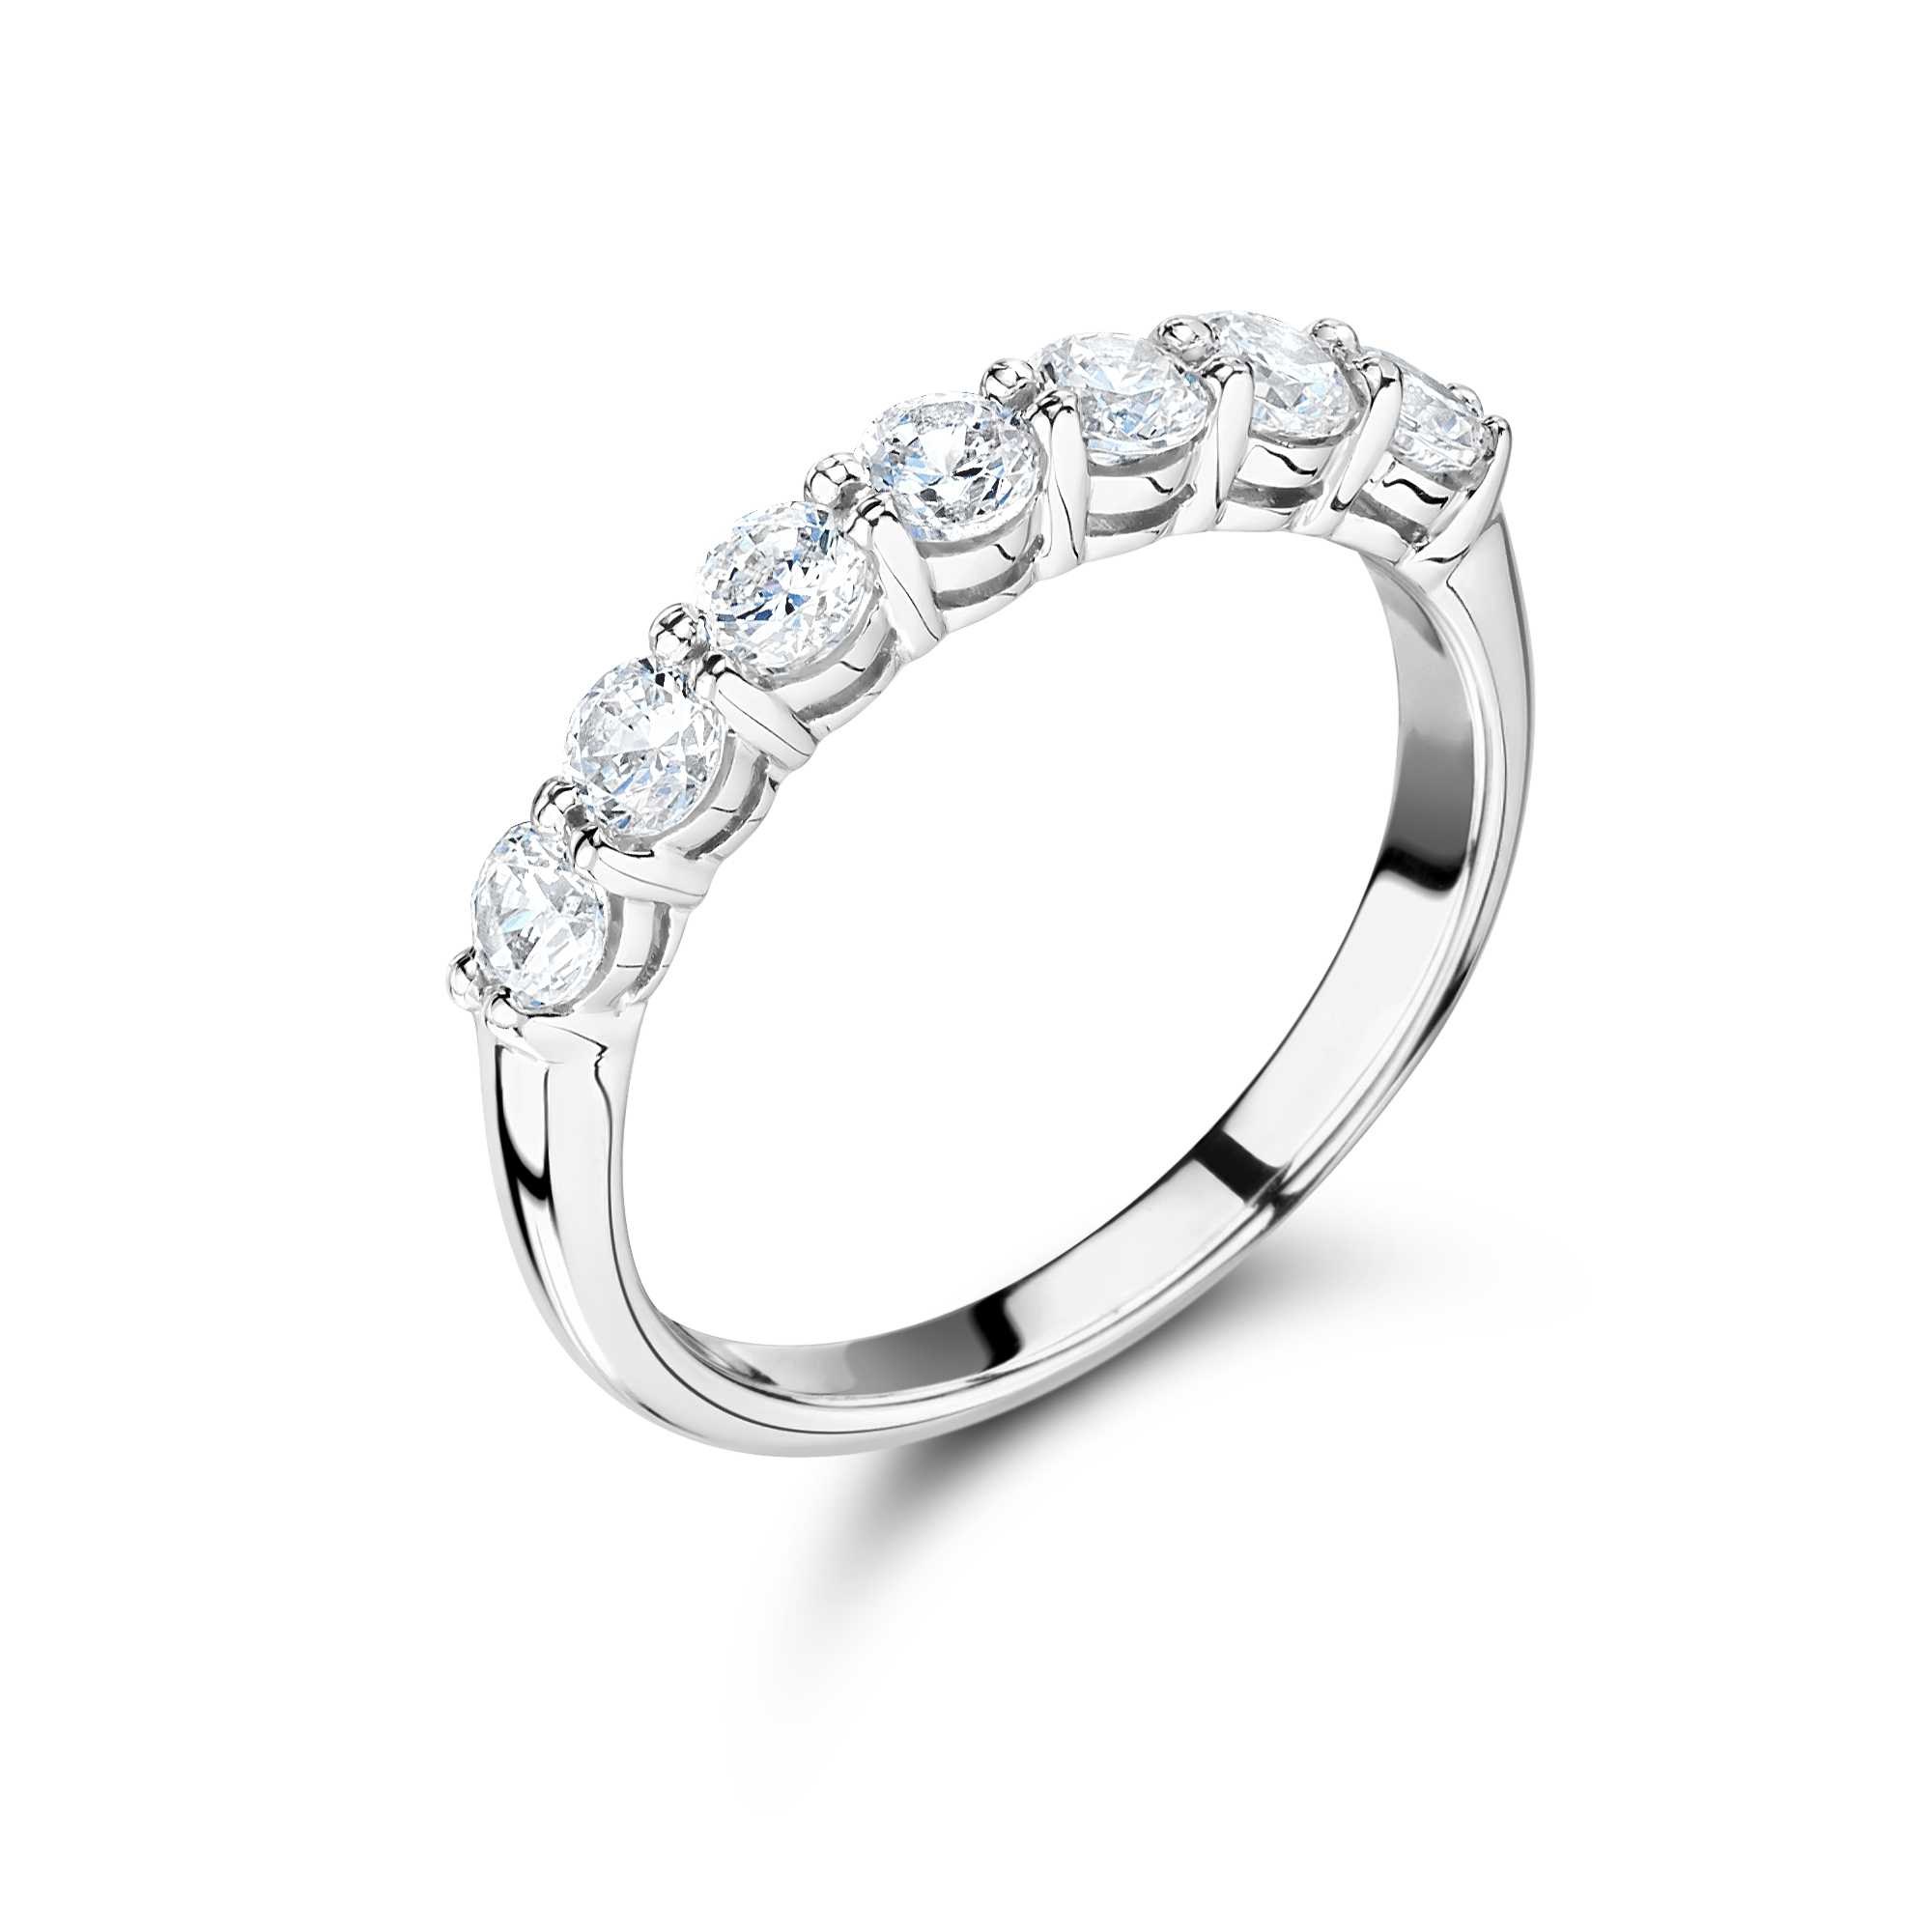 halo products engagement ring ctw diamond center saturn with square rounded shank